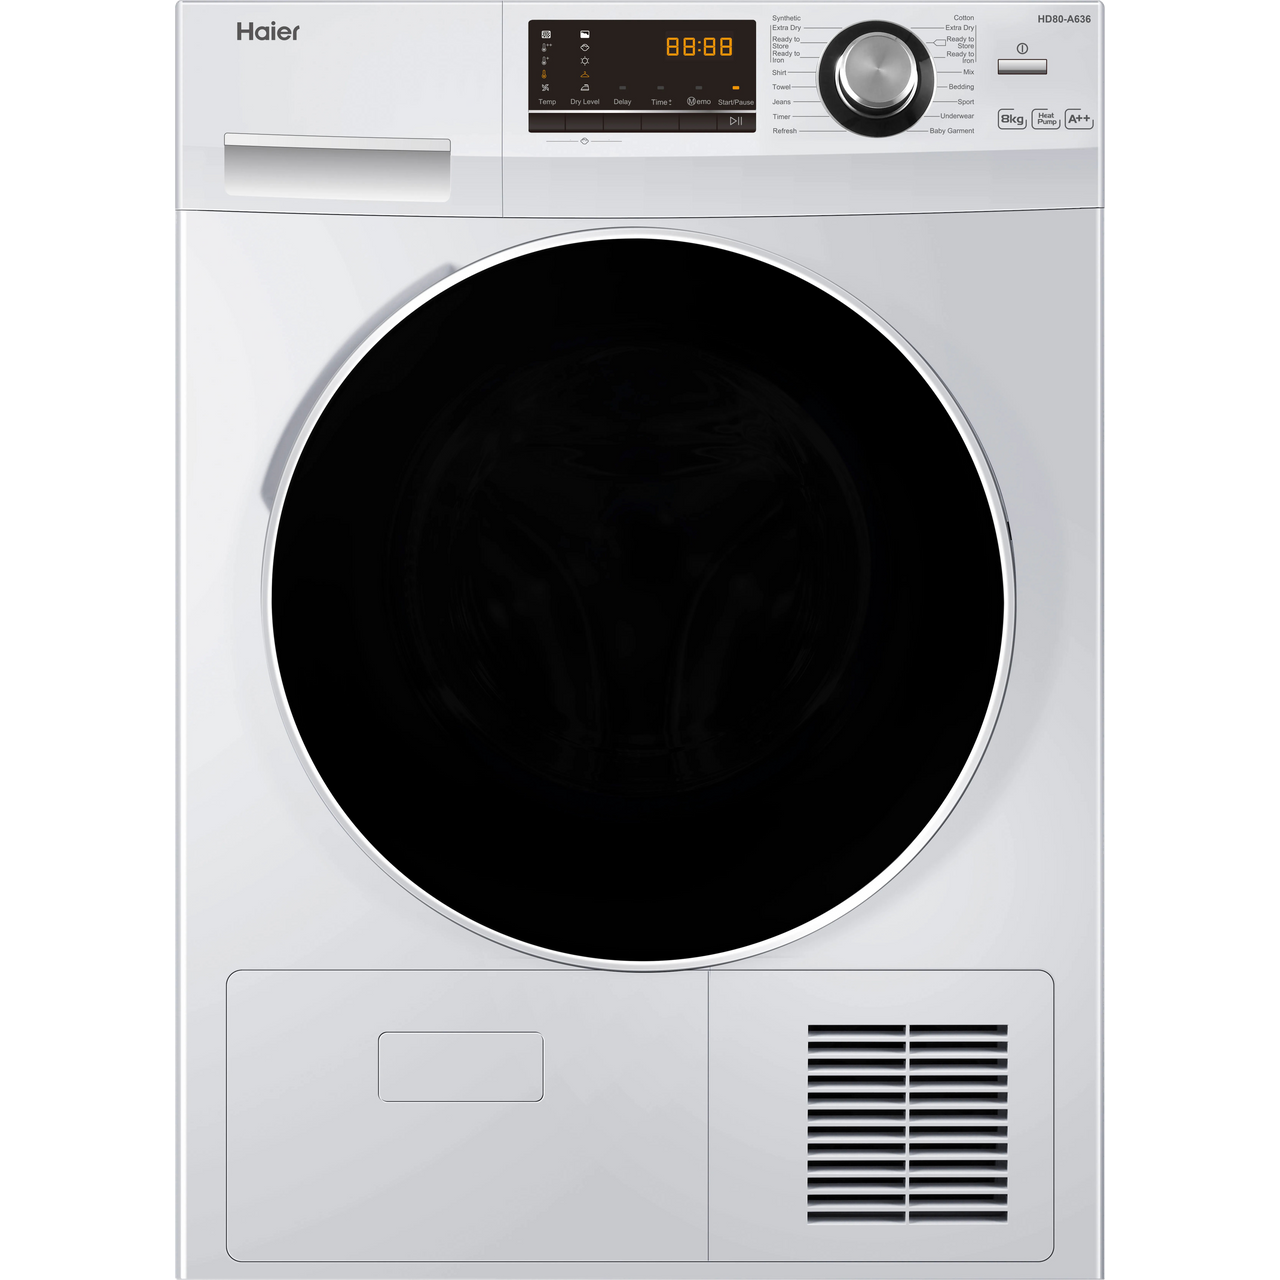 Haier HD80-A636 8Kg Heat Pump Tumble Dryer - White - A++ Rated